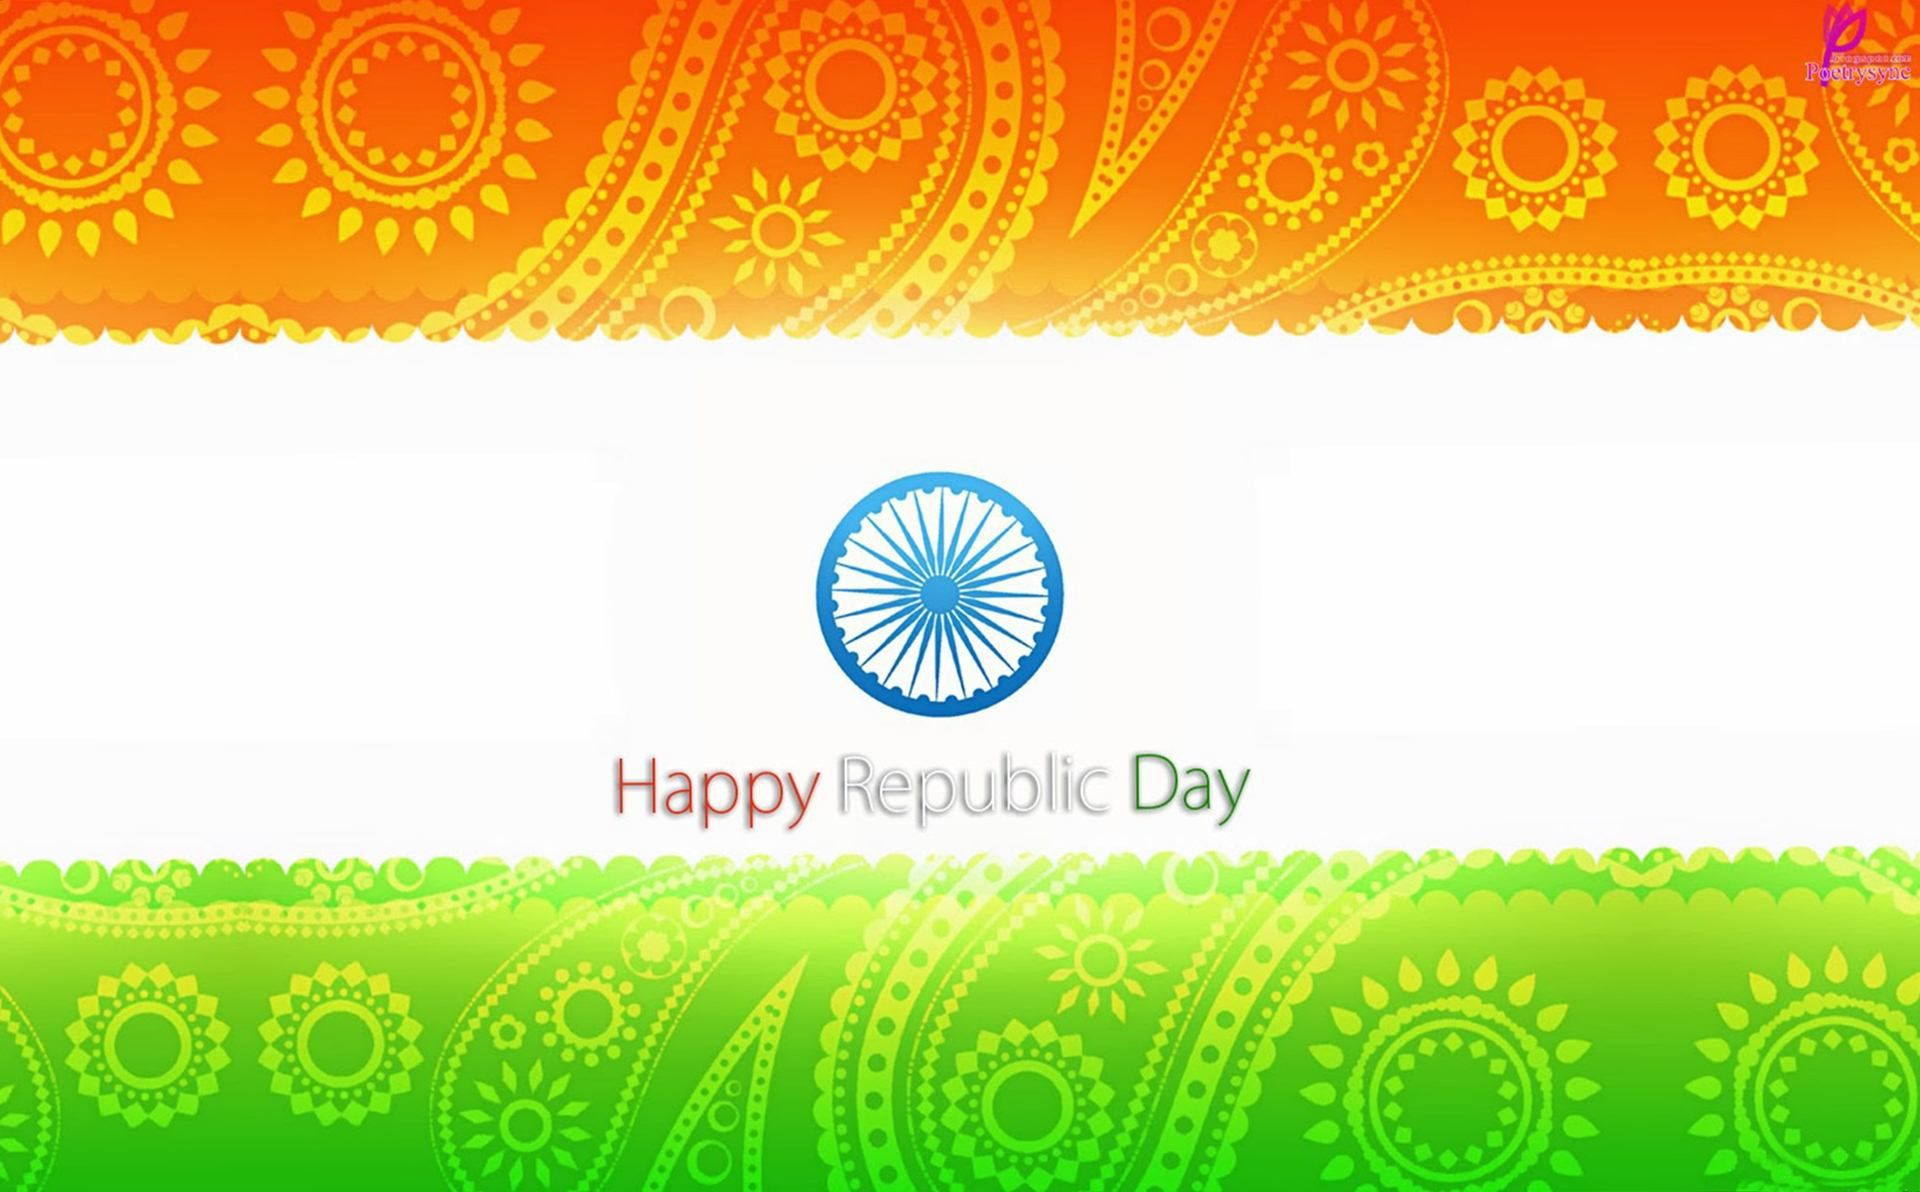 download republic day hd wallpapers, images for mobile and pc | epic